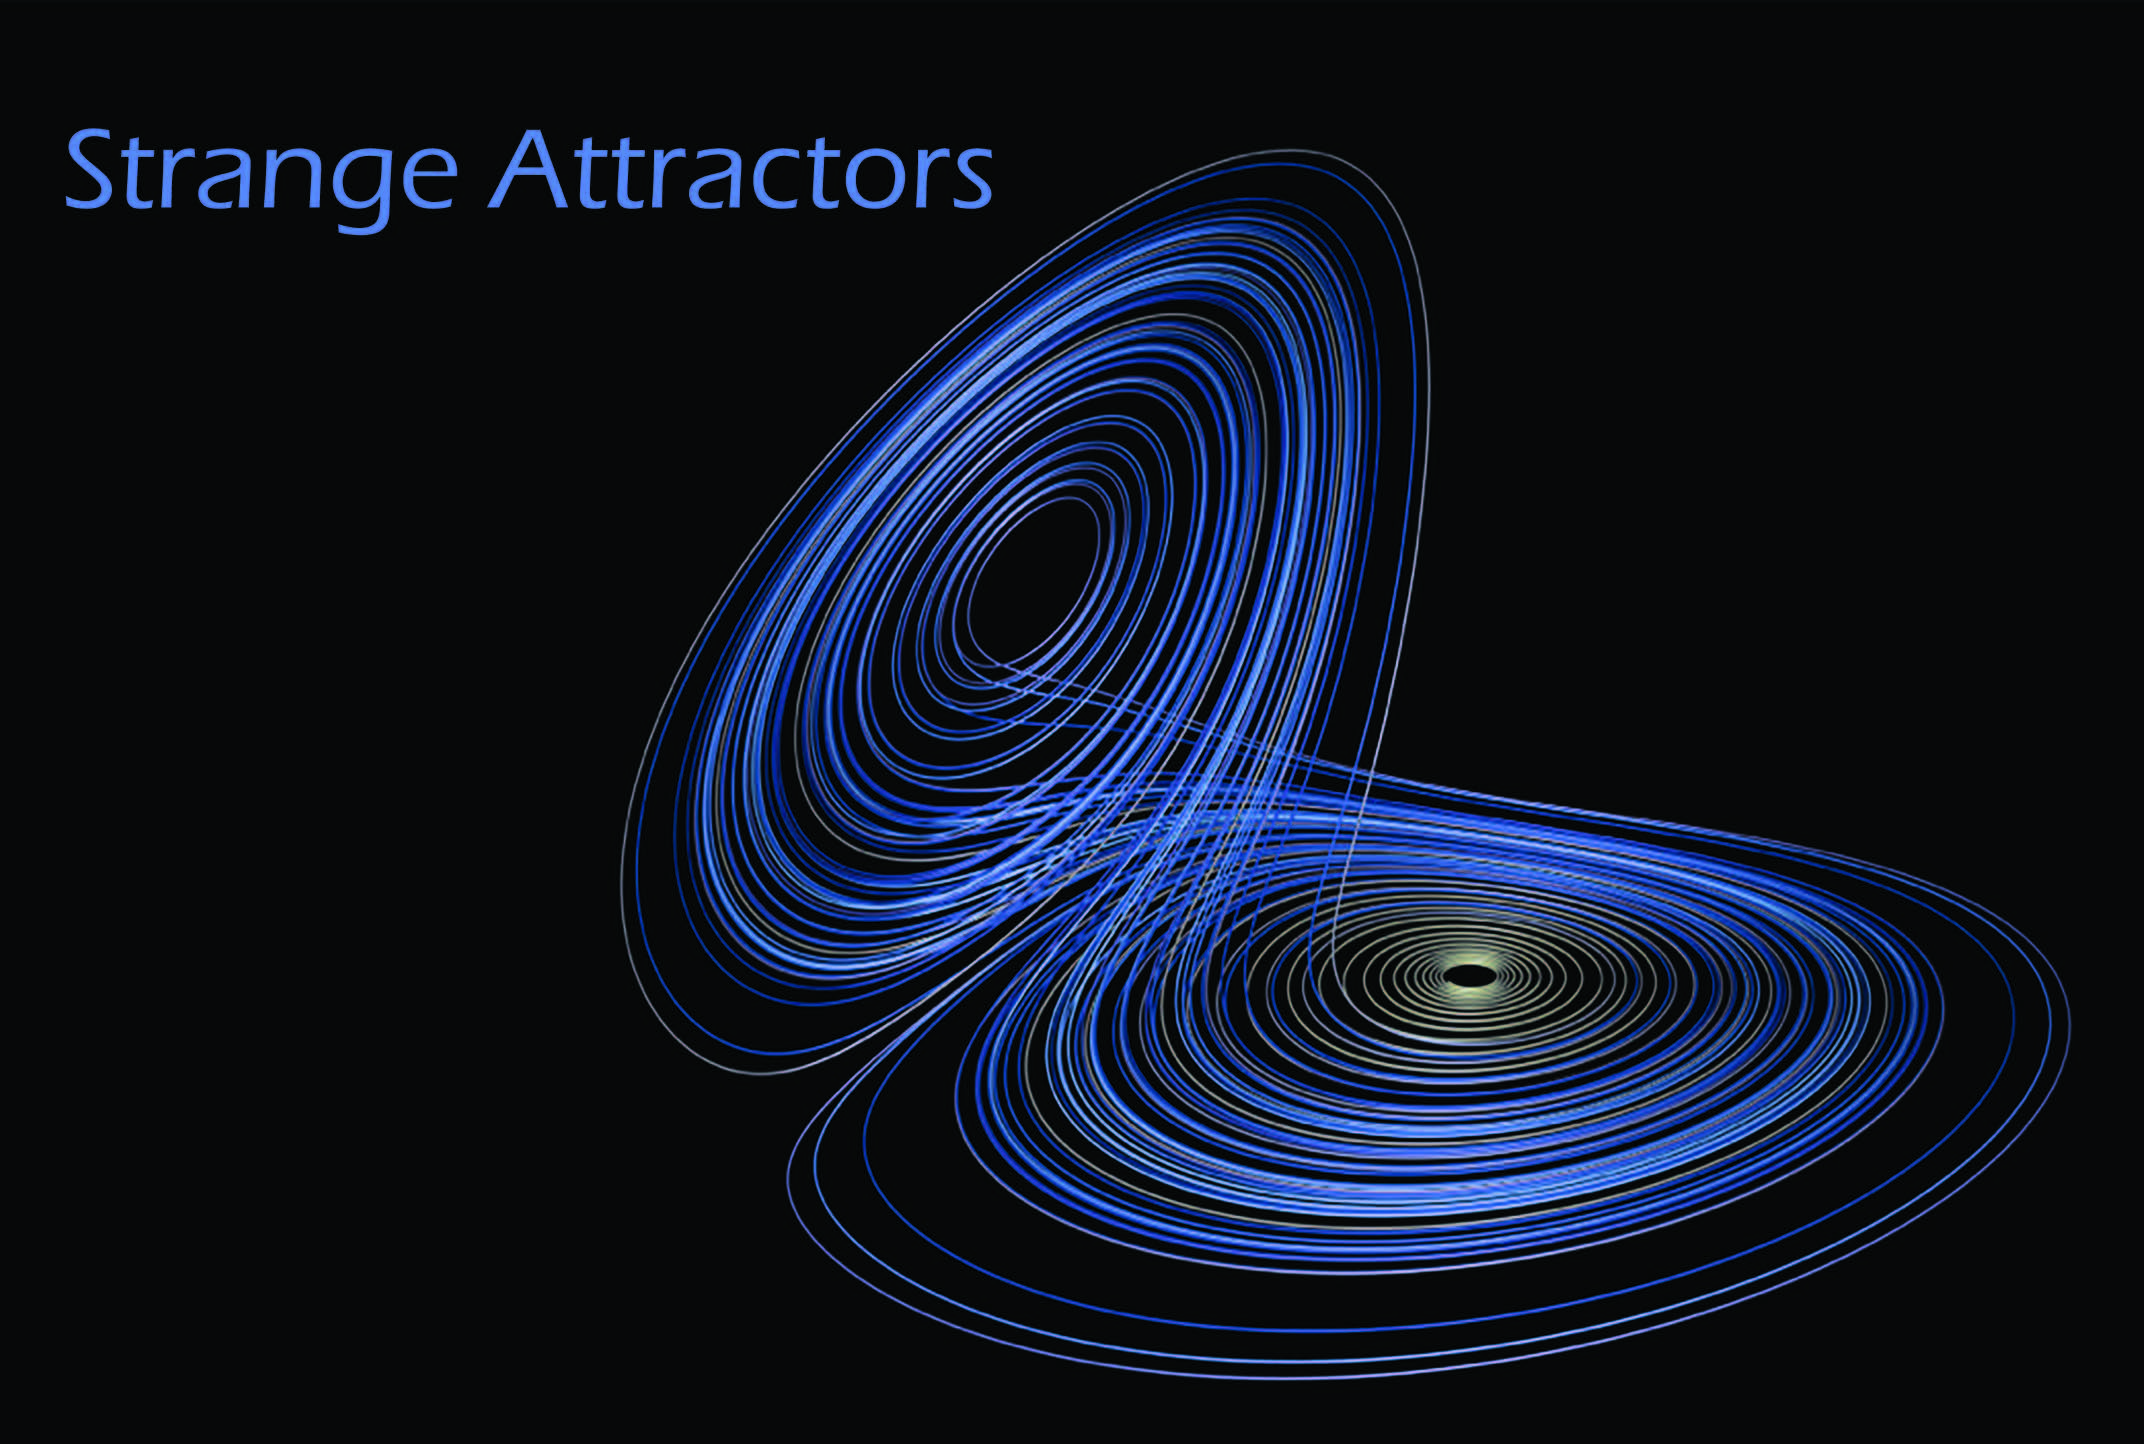 Strange Attractors Postcard Front